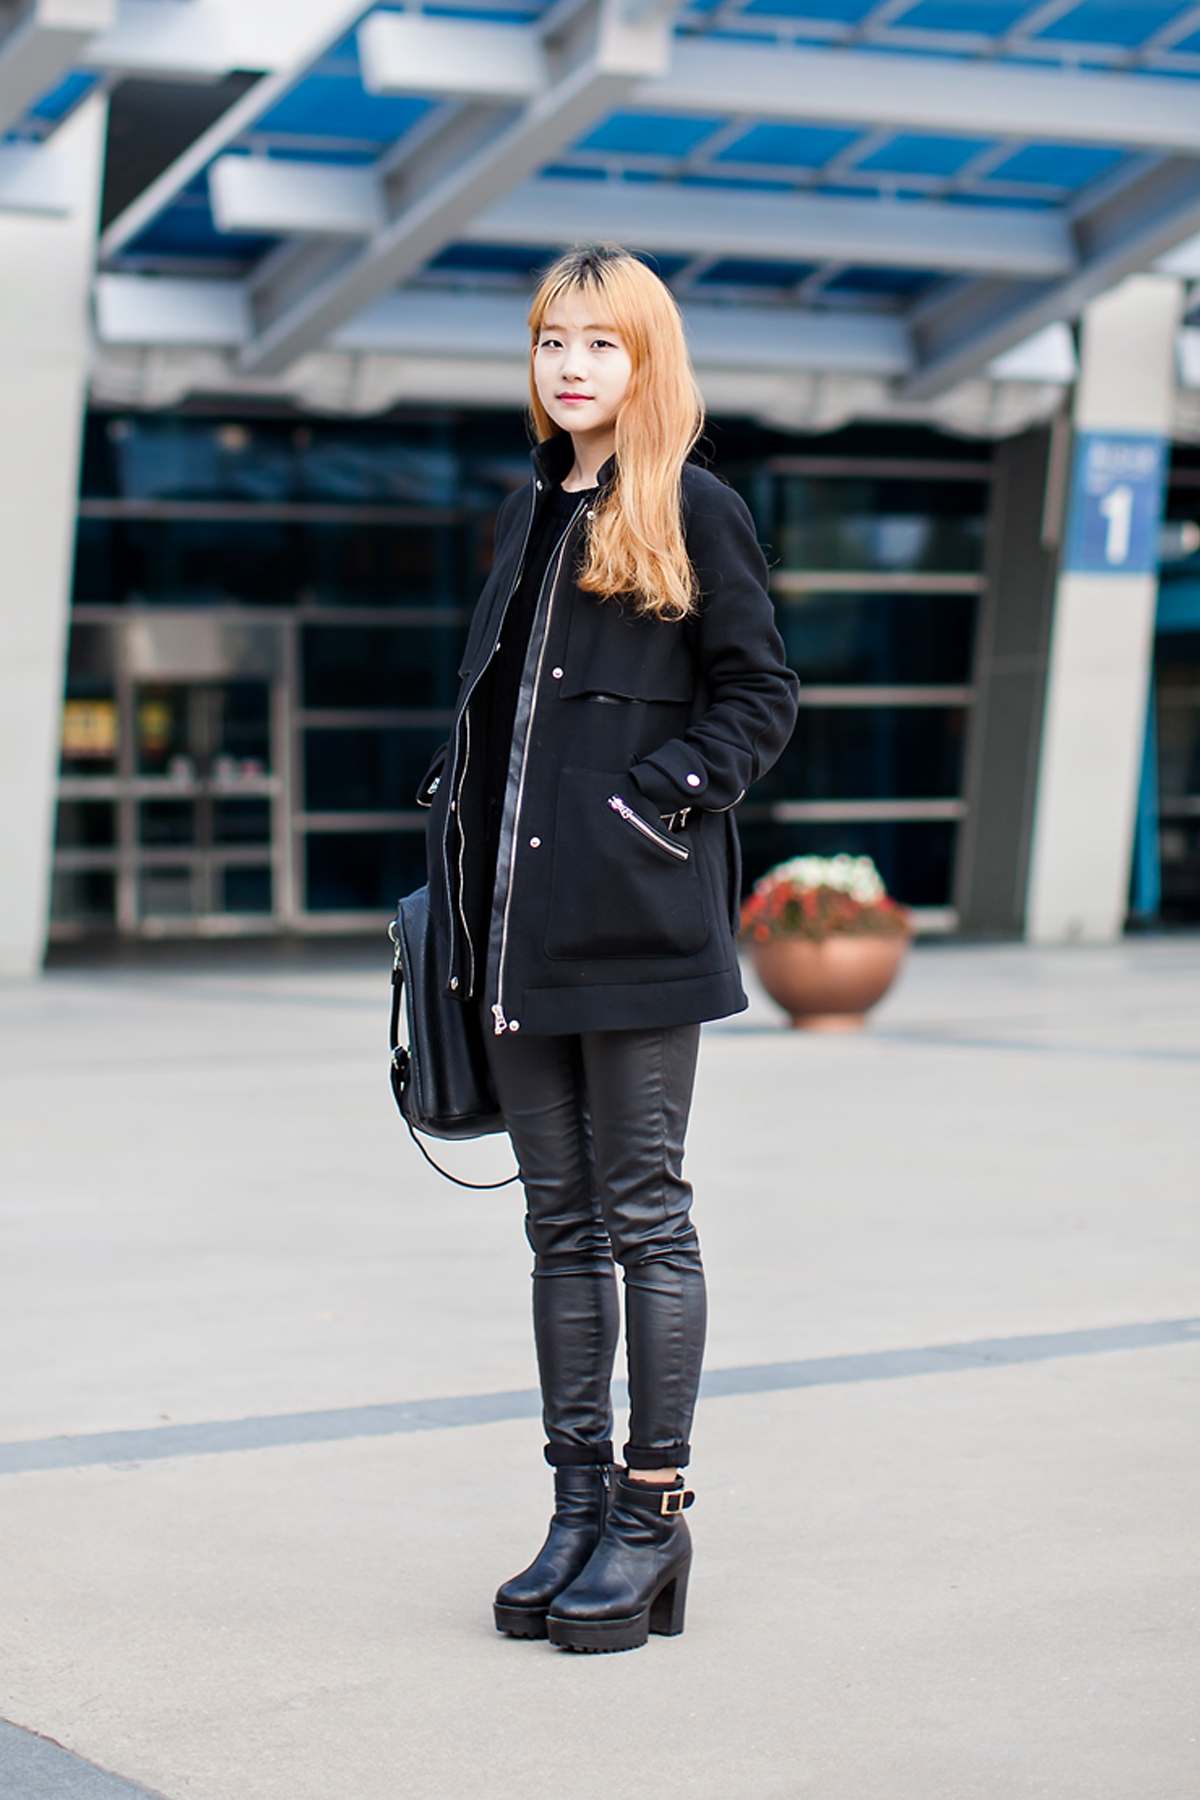 On the street… Han Soojung Busan